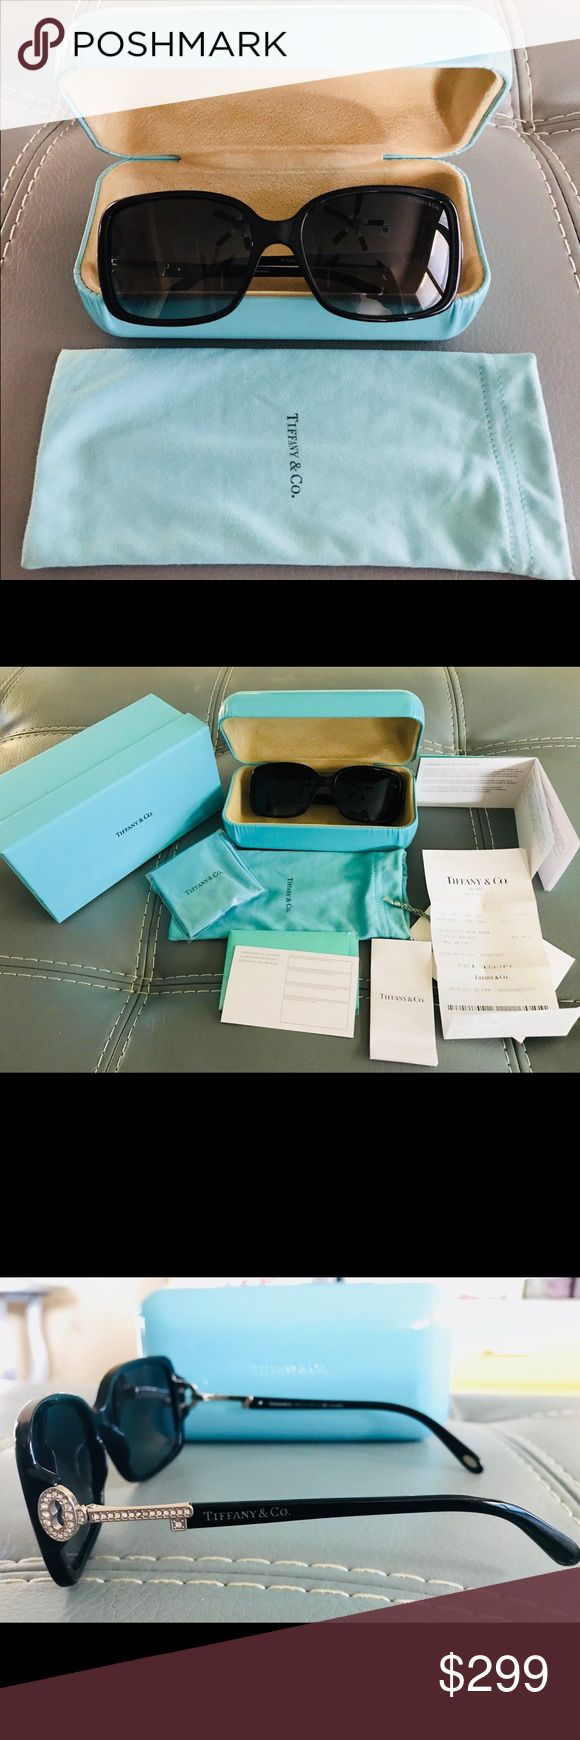 Tiffany & Co Woman's Sunglasses In like new condition. Only used a few times. TF4043-B 8001/T3 Black Polarized Tiffany & Co Key Black Sunglasses. Original box and case, includes certificate of authenticity and receipt for Lifetime warranty. Tiffany & Co. Accessories Sunglasses